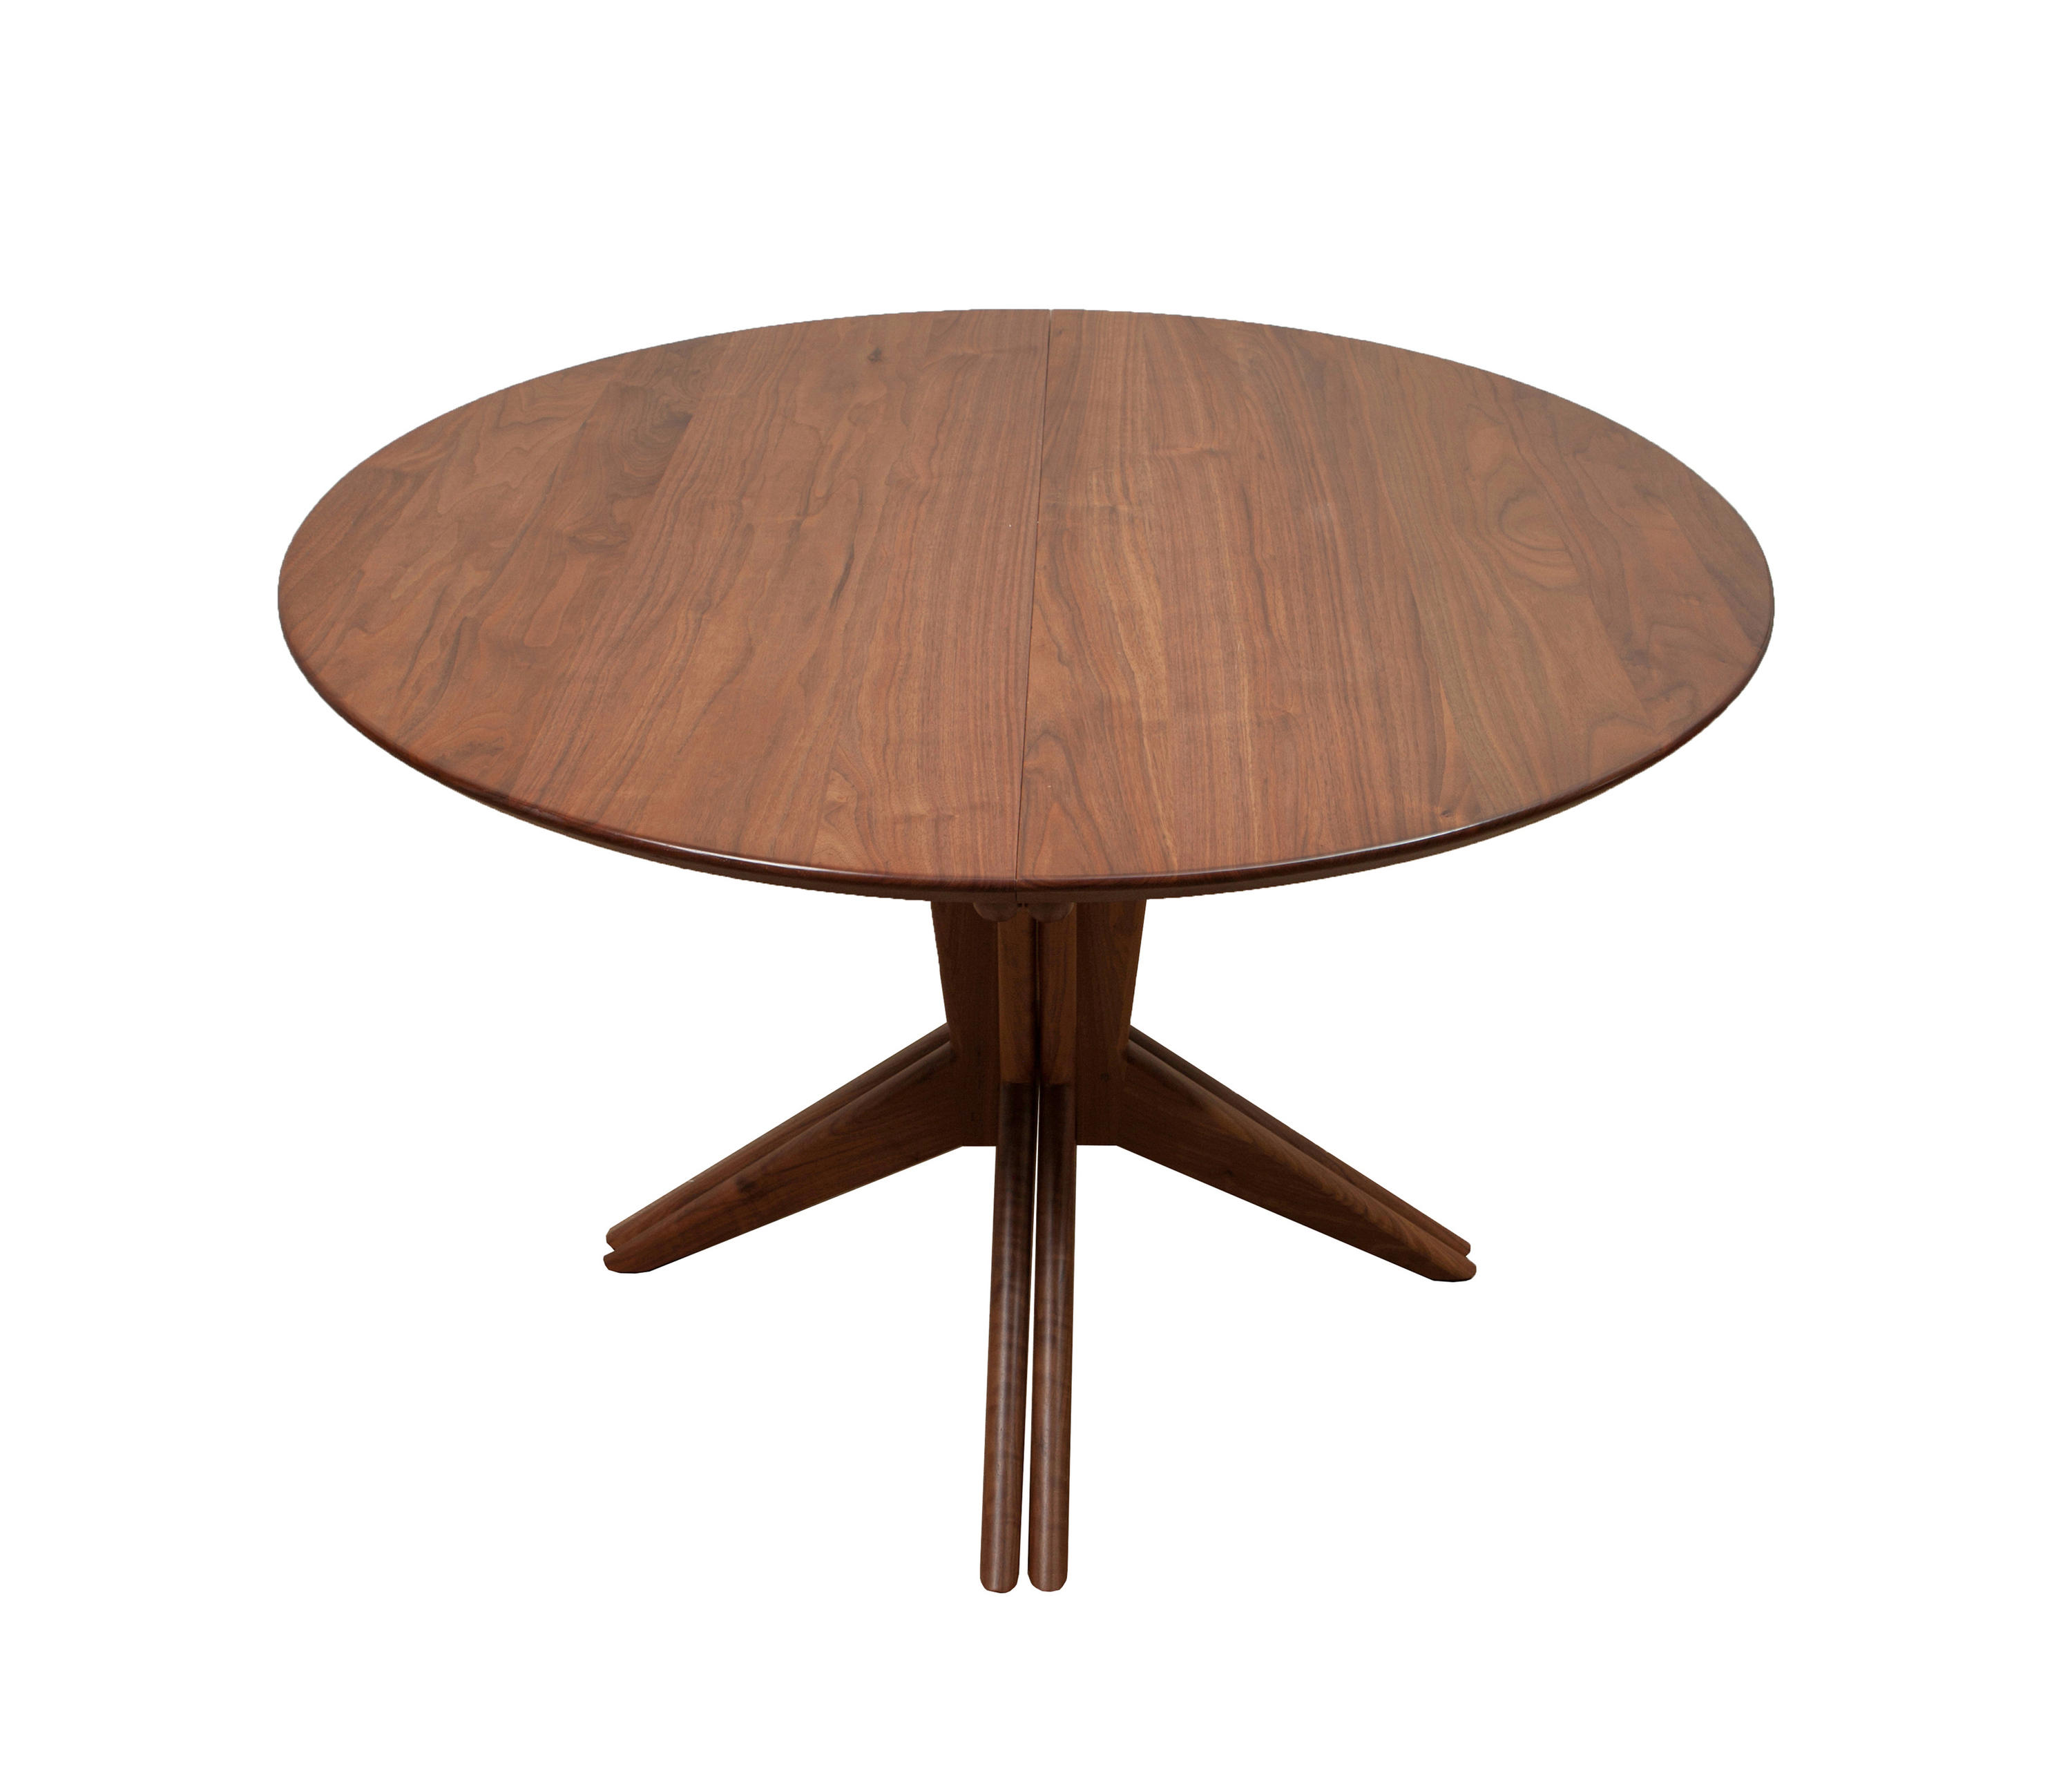 Pedestal Smilow Tables Table Design Extension From Dining OPwkXulTZi